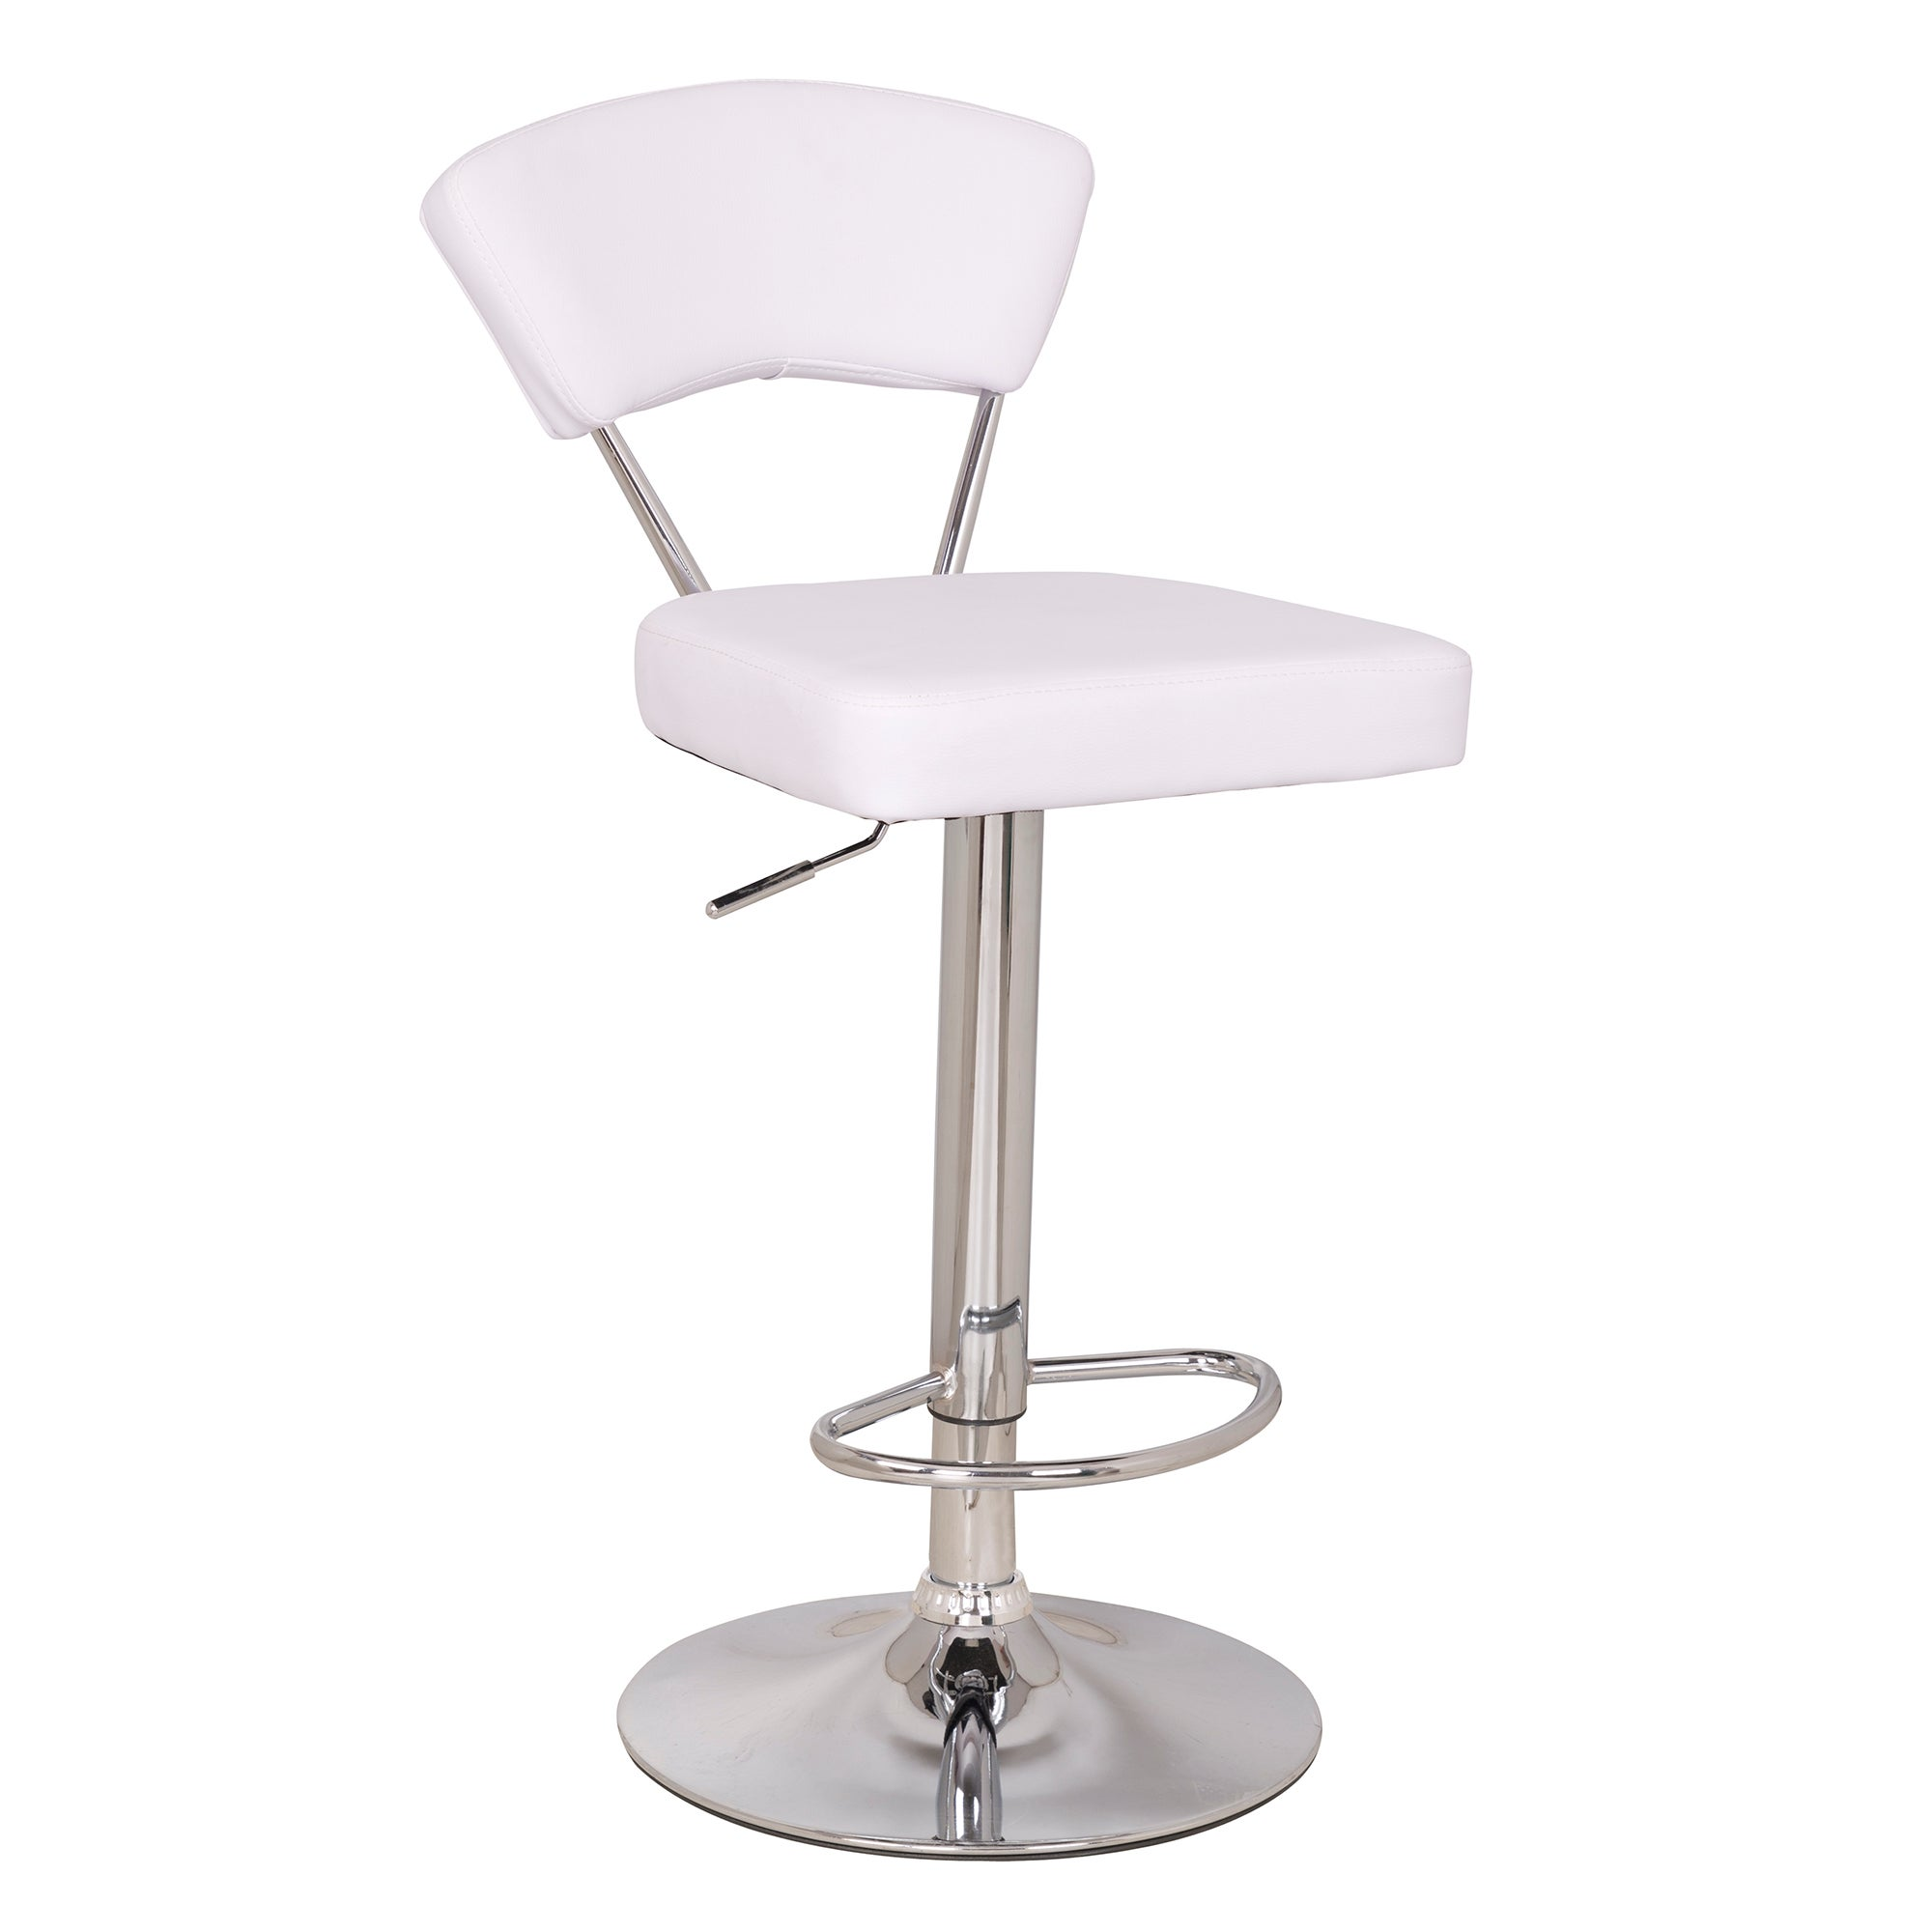 Astrid Upholstered Gas Lift Bar Stool